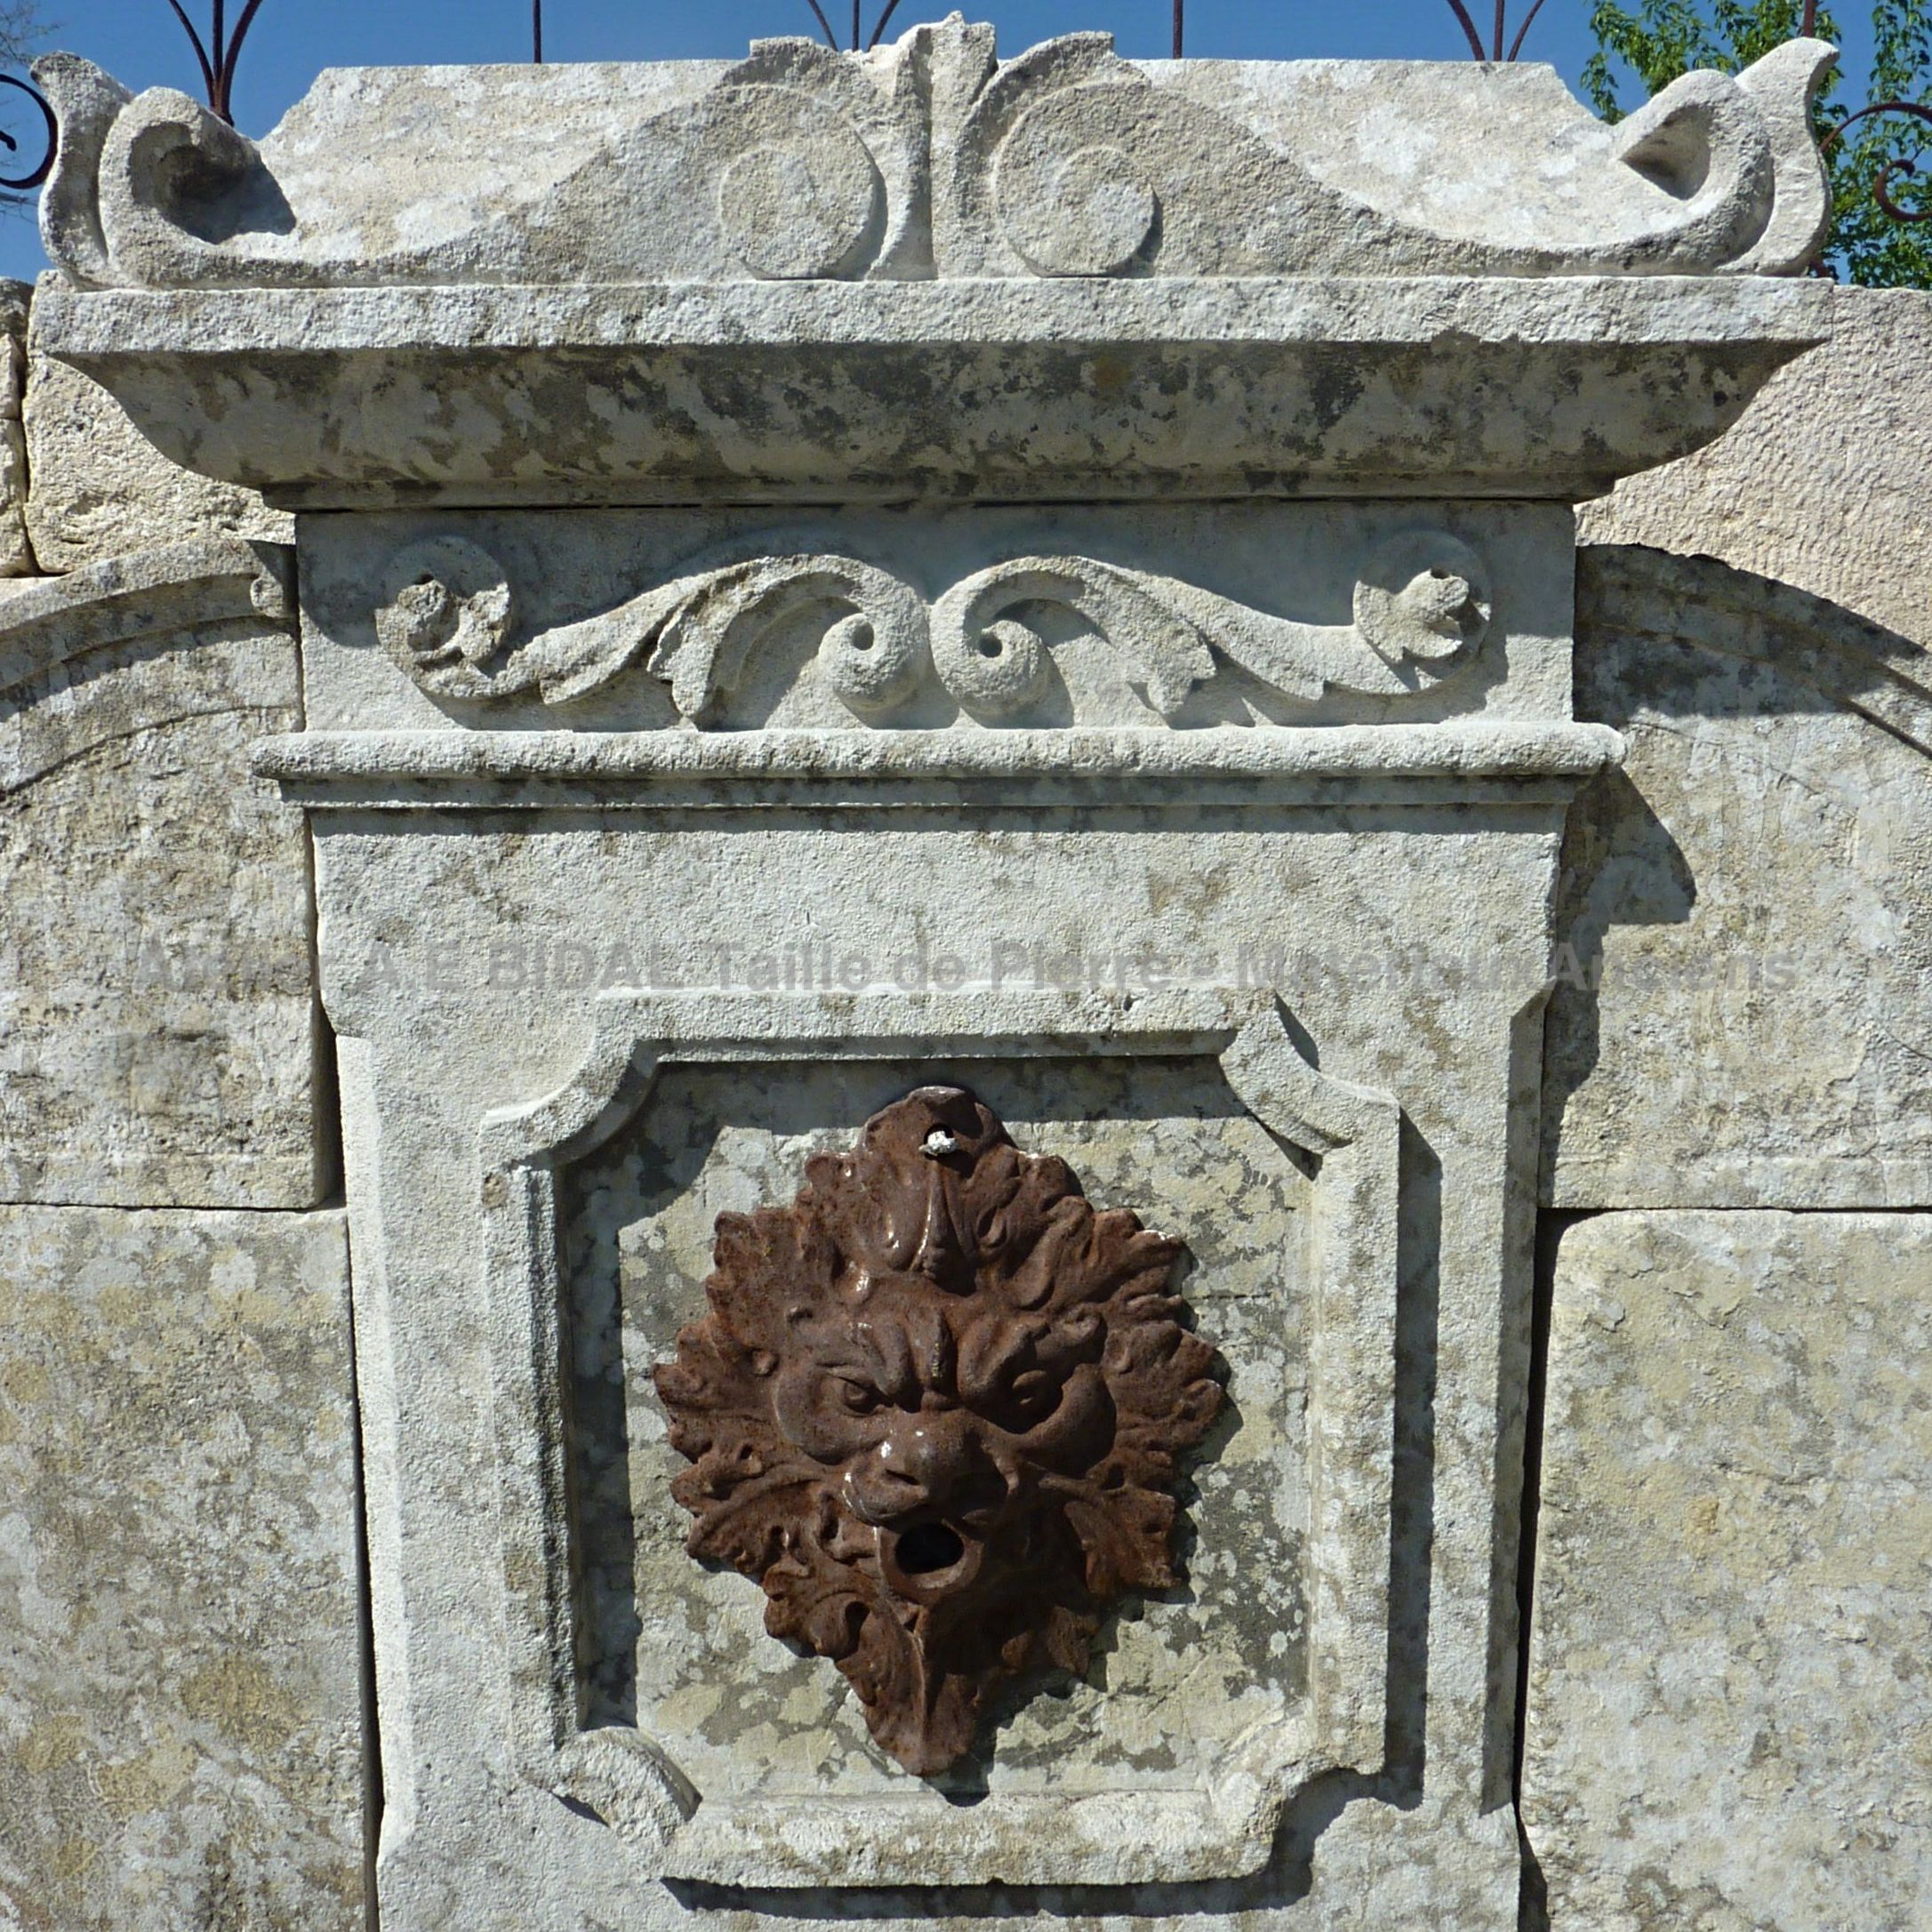 Detail of the cast iron water outlet on our old stone wall fountain | Stone fountain with cast iron lion's head.